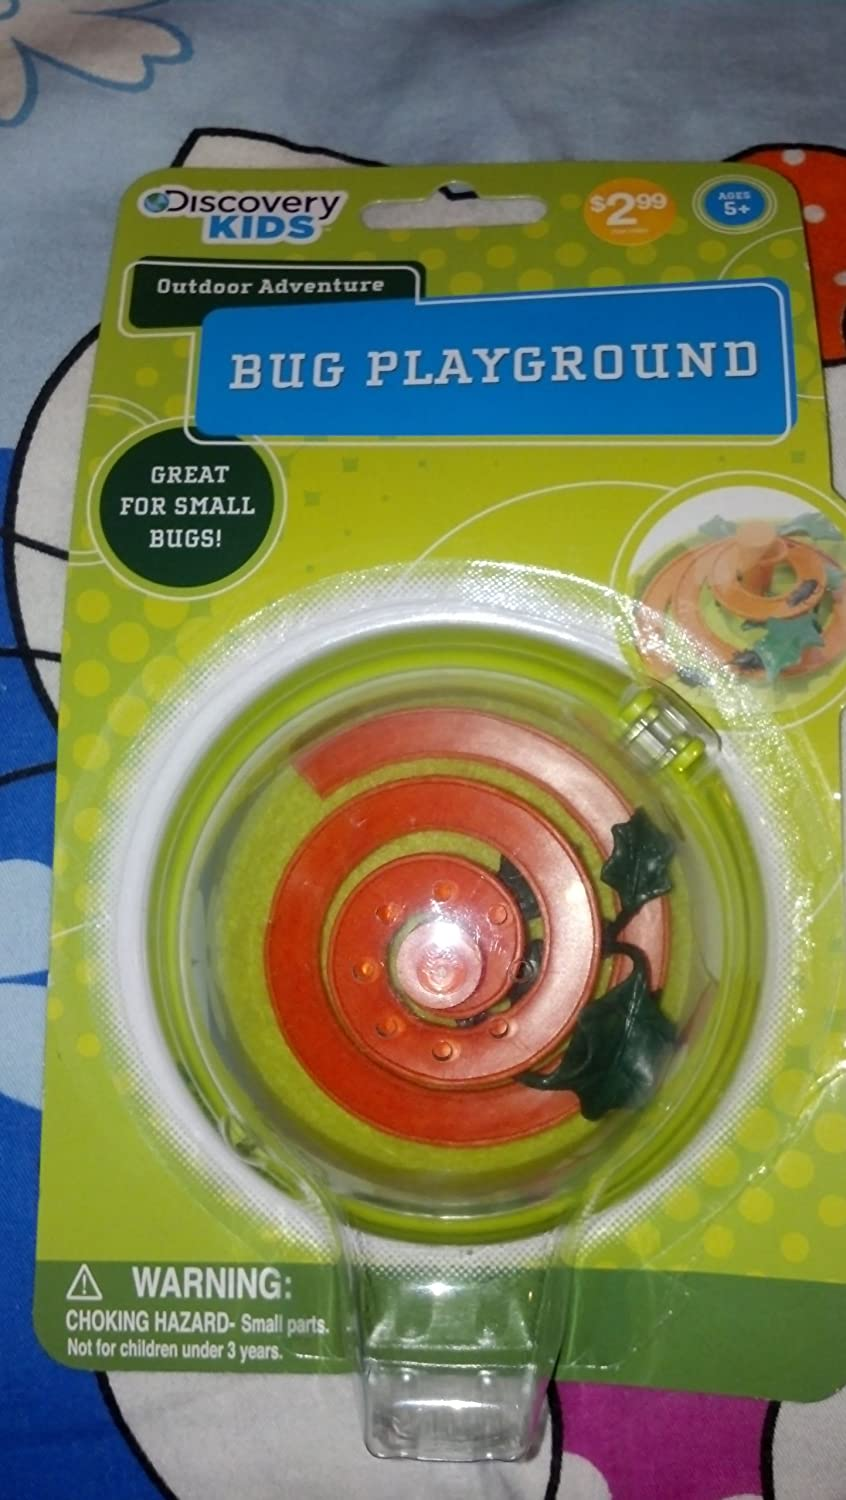 DISCOVERY KIDS OUTDOOE ADVENTURE BUG PLAYGROUND GREAT FOR SMALL BUGS by Discovery